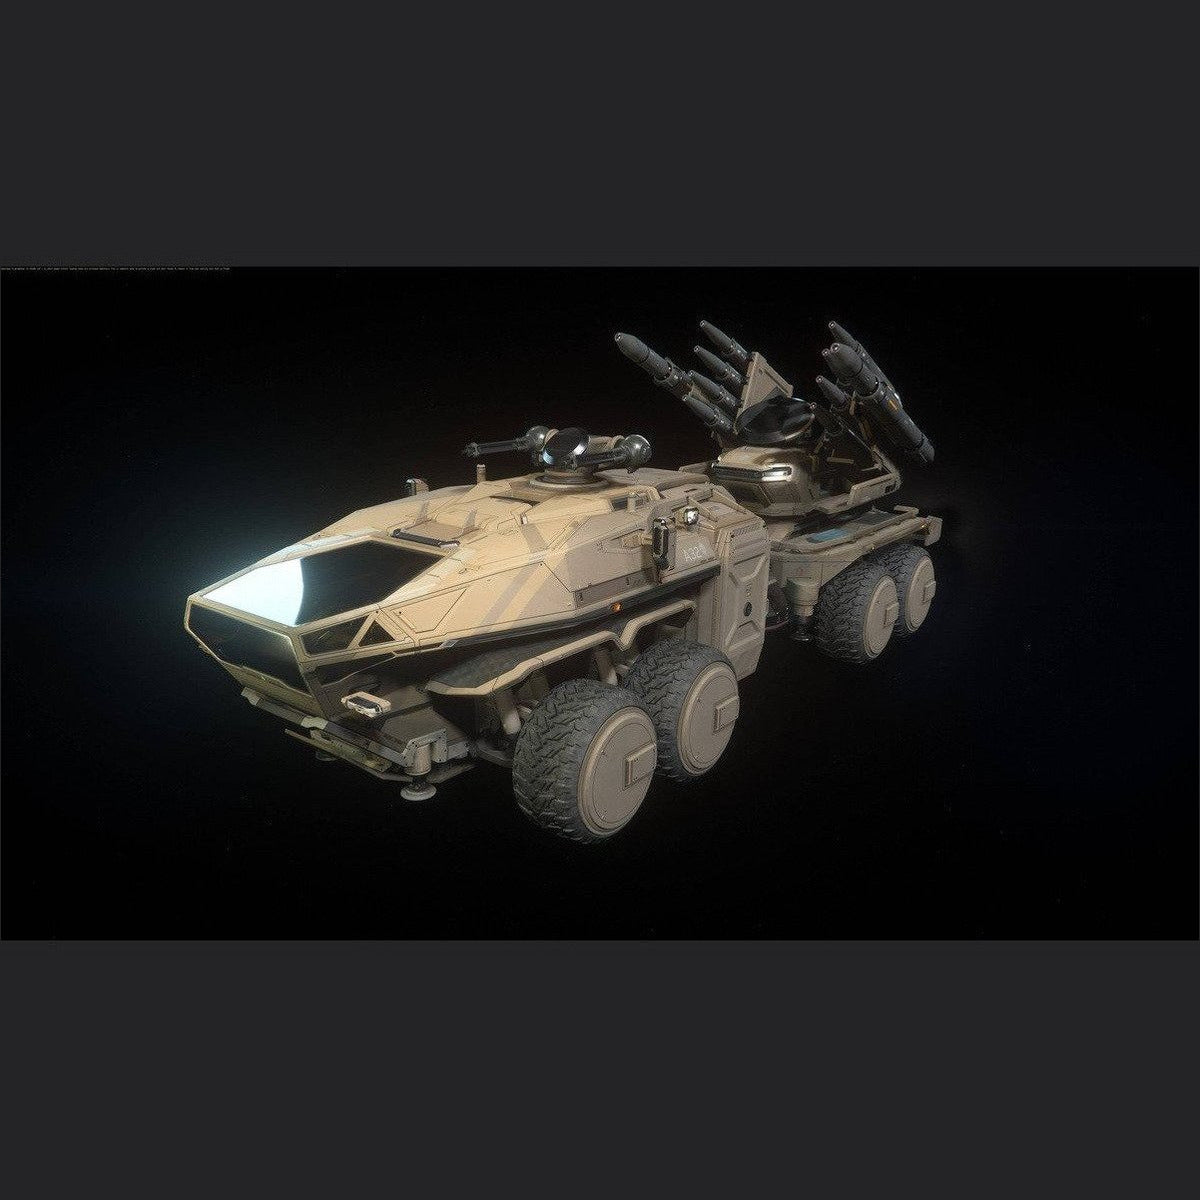 BALLISTA DUNESTALKER LIMITED EDITION - LTI (rare) | GANJALEZZ JPEGs STORE | Space Foundry Marketplace.